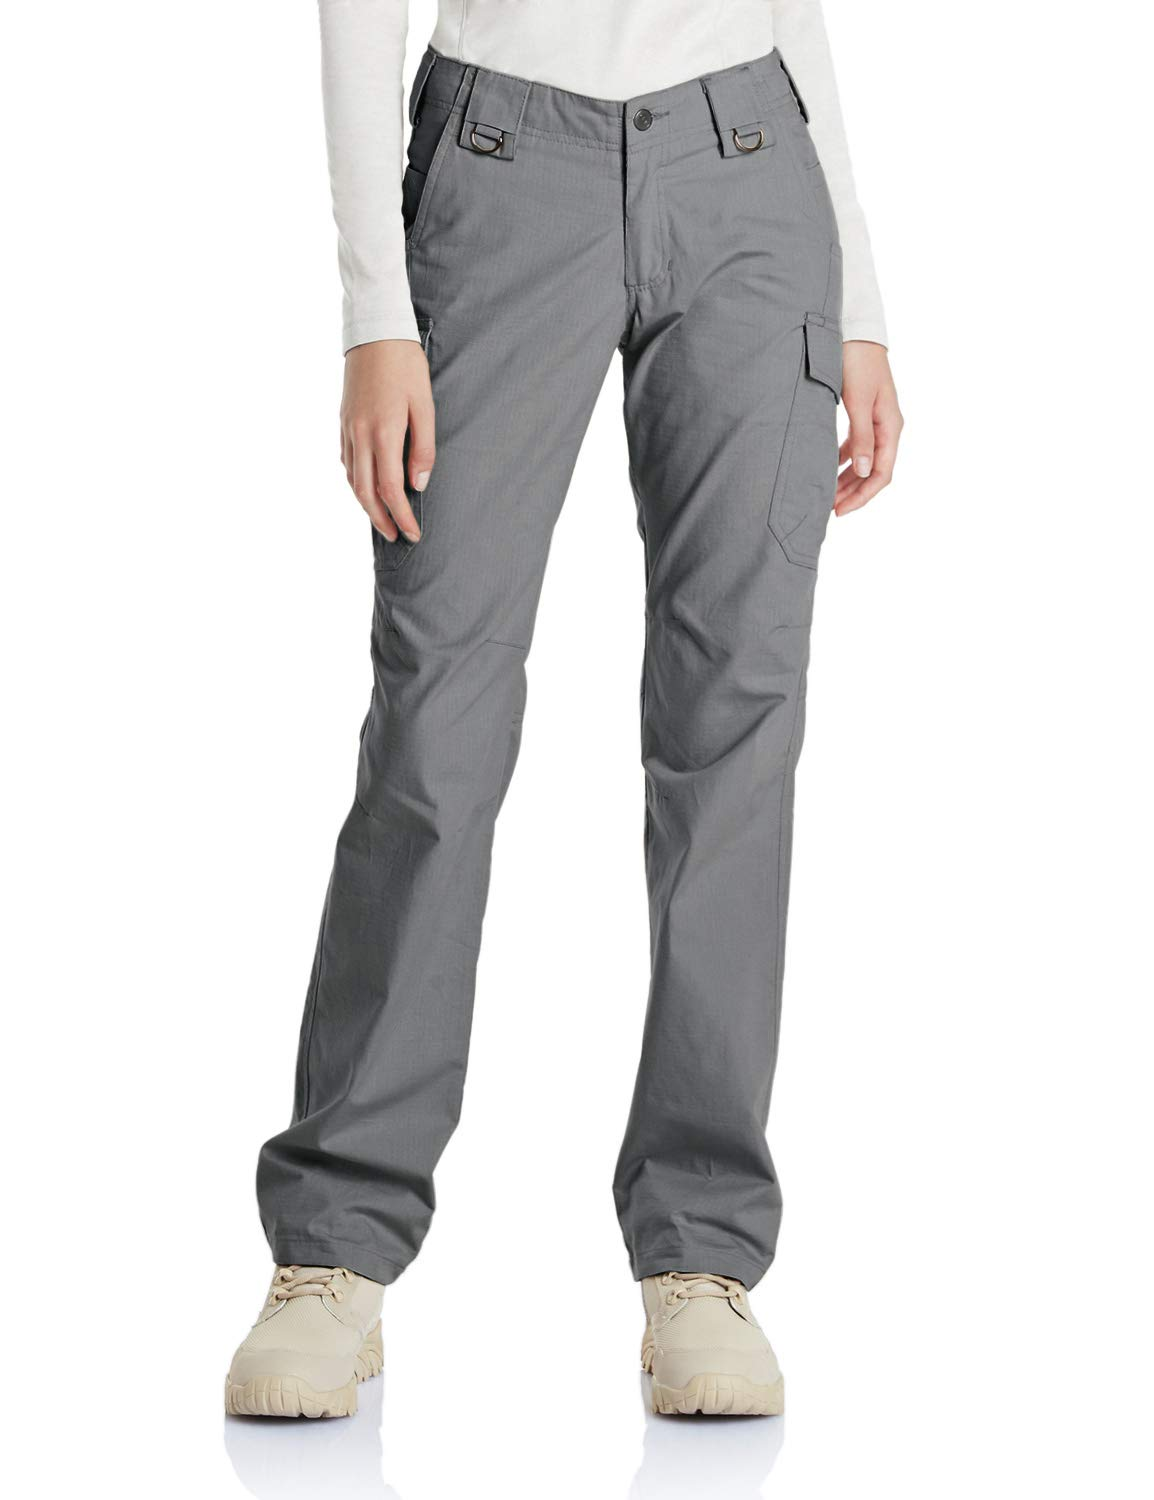 CQR Women's Outdoor Hiking UPF 50+ Flex Stretch with Multi Pockets